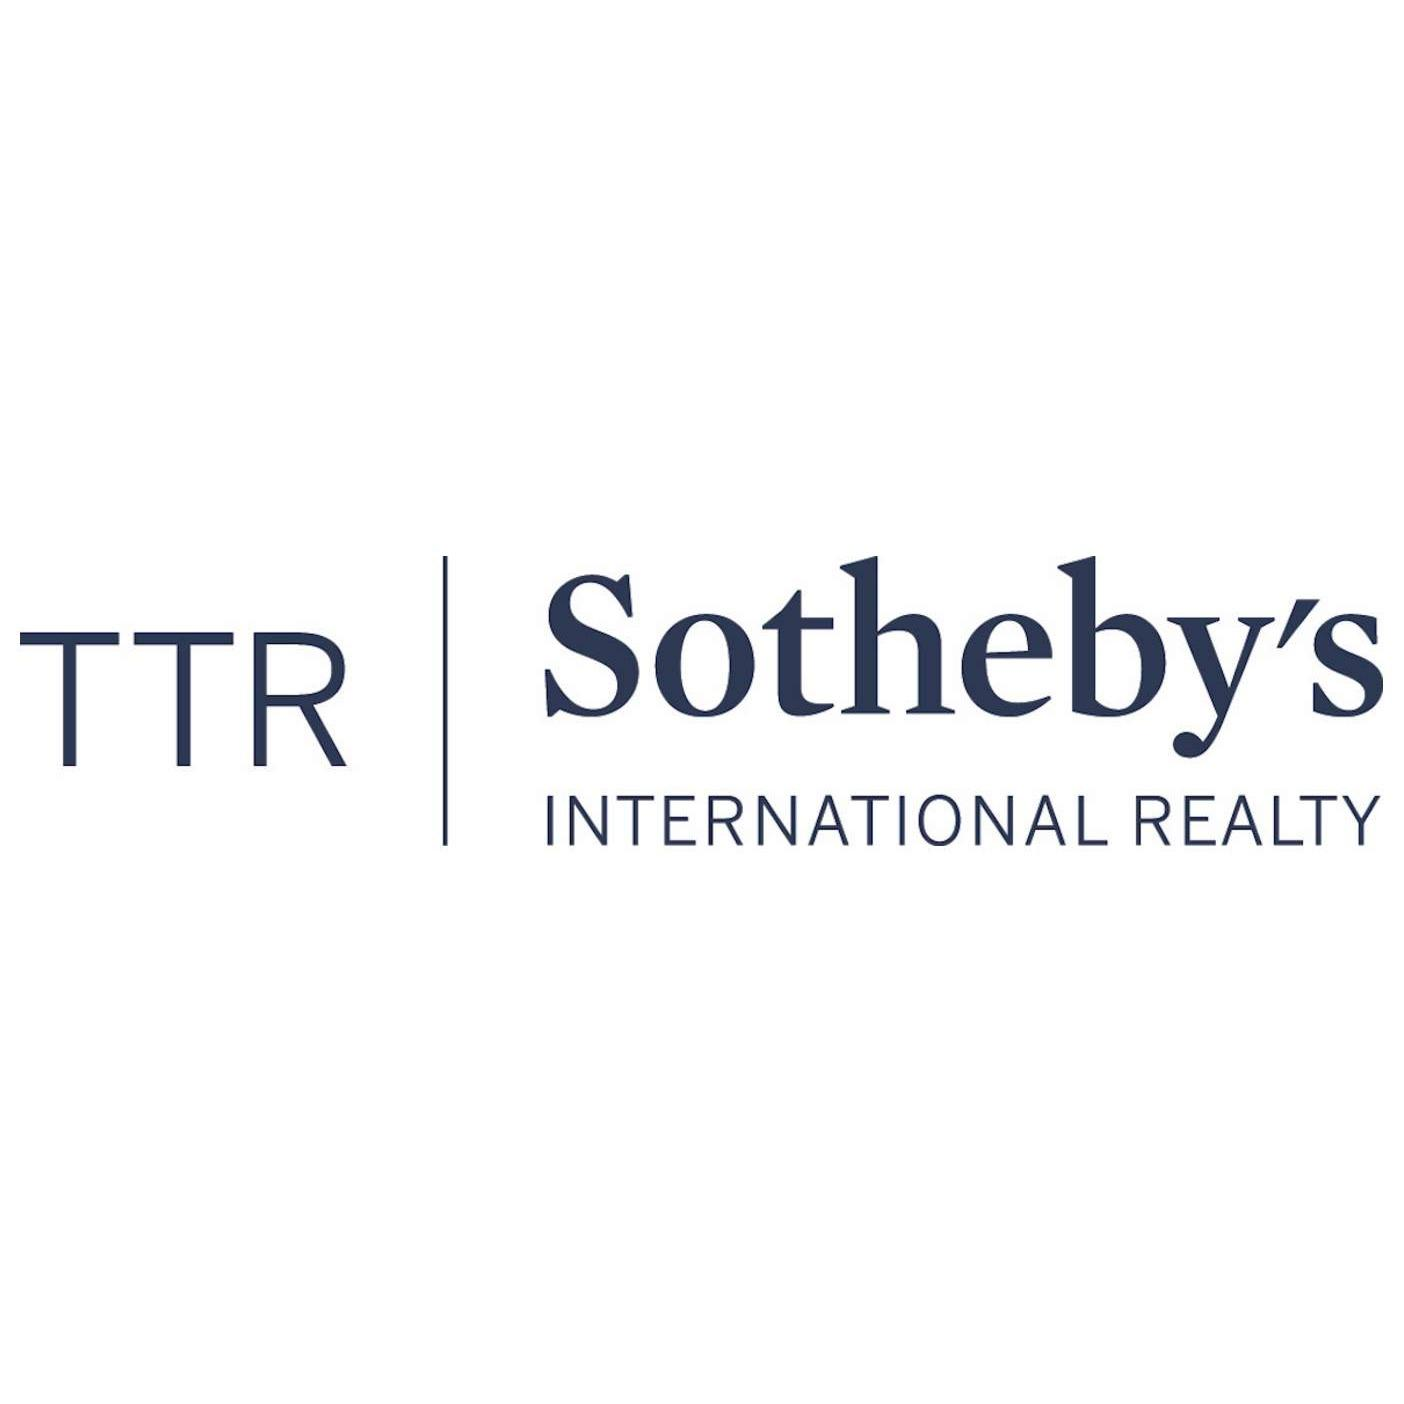 Adrian Small - TTR | Sotheby's International Realty